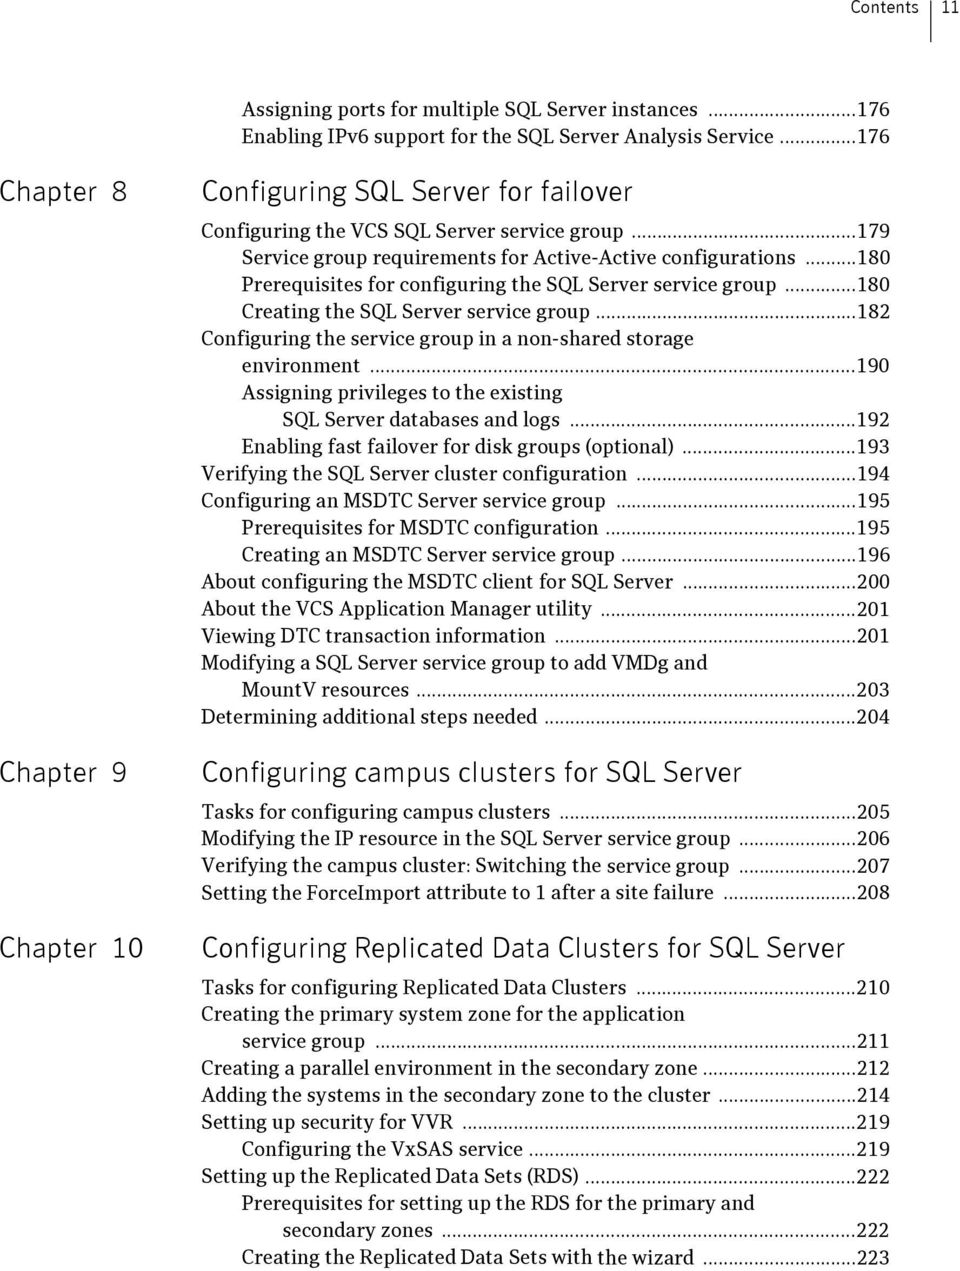 ..180 Prerequisites for configuring the SQL Server service group...180 Creating the SQL Server service group...182 Configuring the service group in a non-shared storage environment.